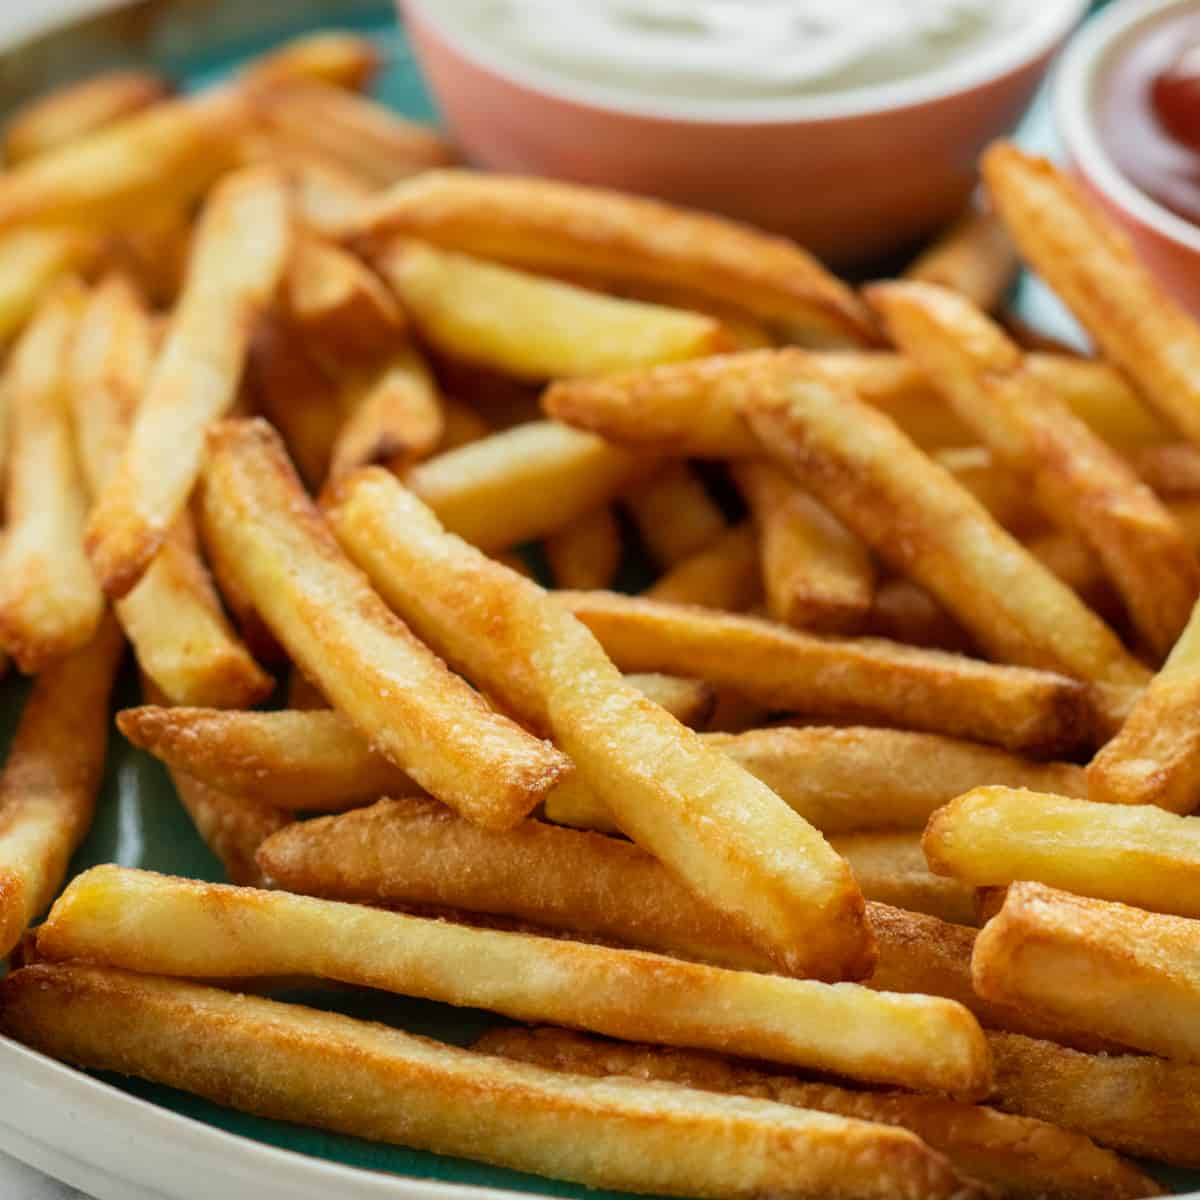 close up of french fries on a plate